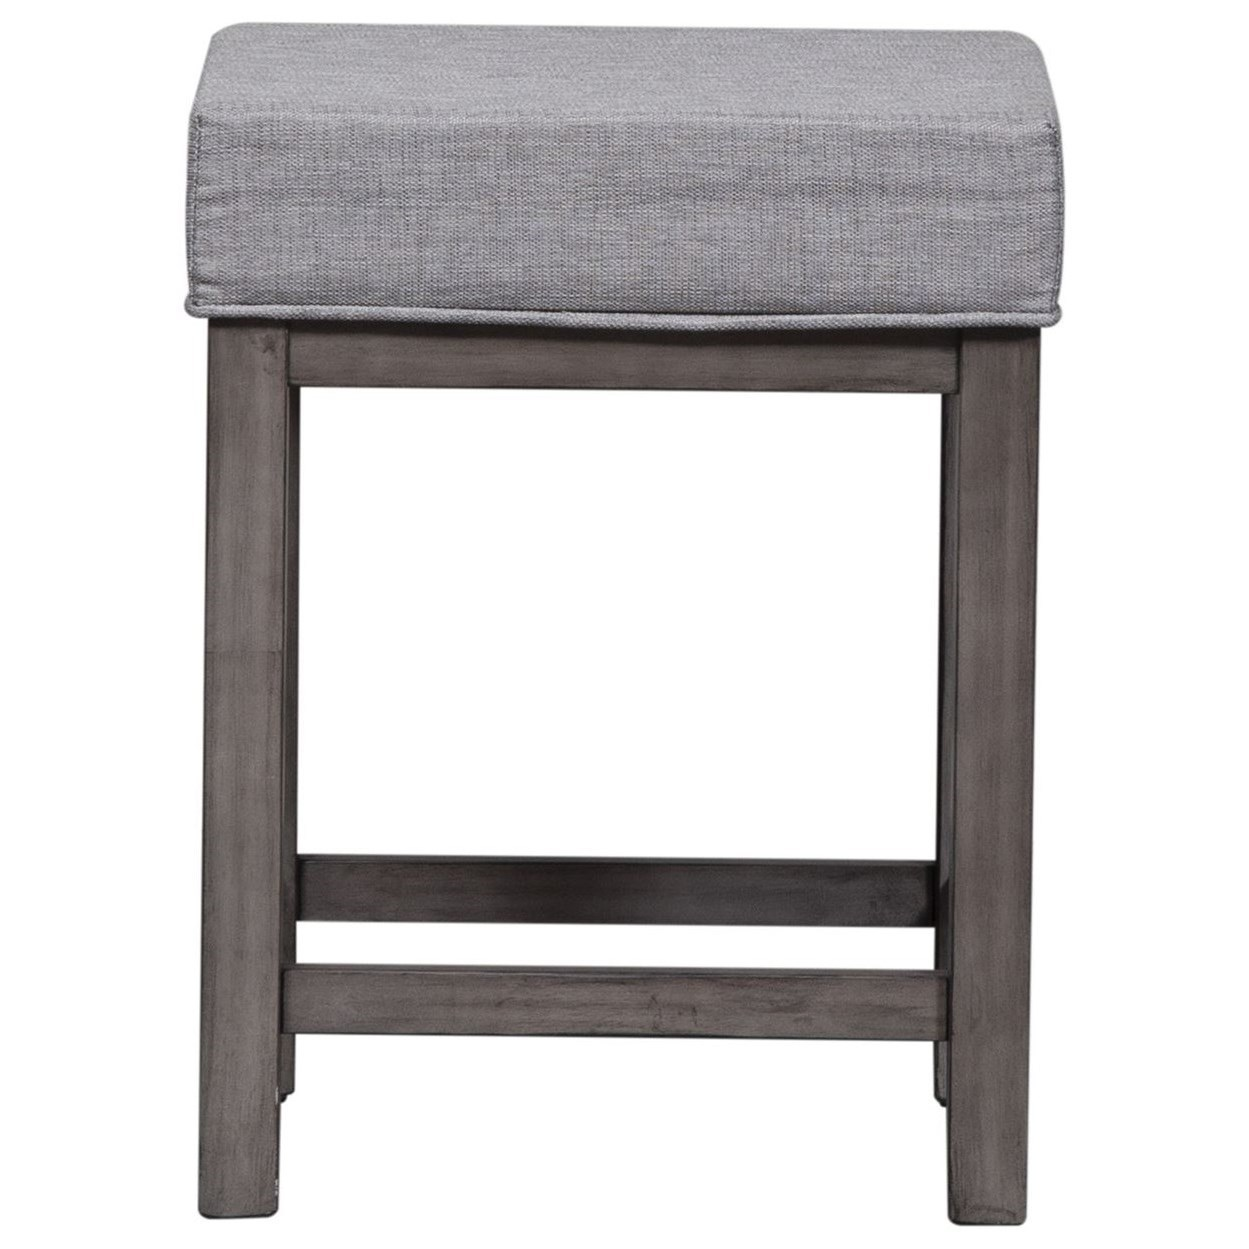 Tanners Creek Upholstered 3-Piece Console Stool Set by Libby at Walker's Furniture